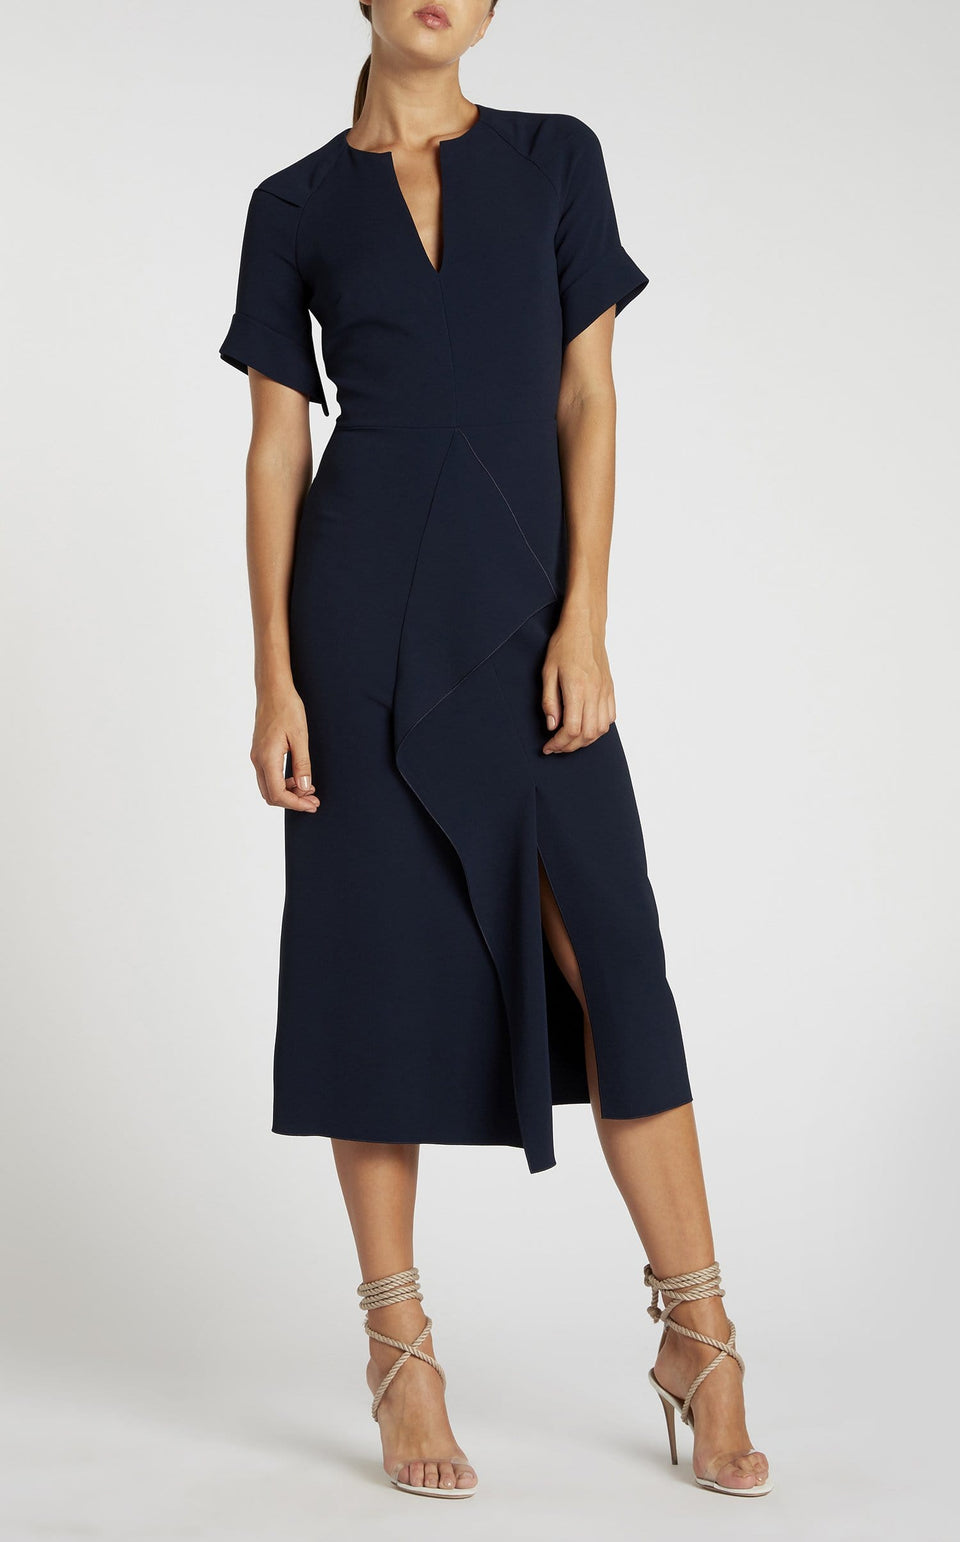 Tresta Dress In Navy from Roland Mouret